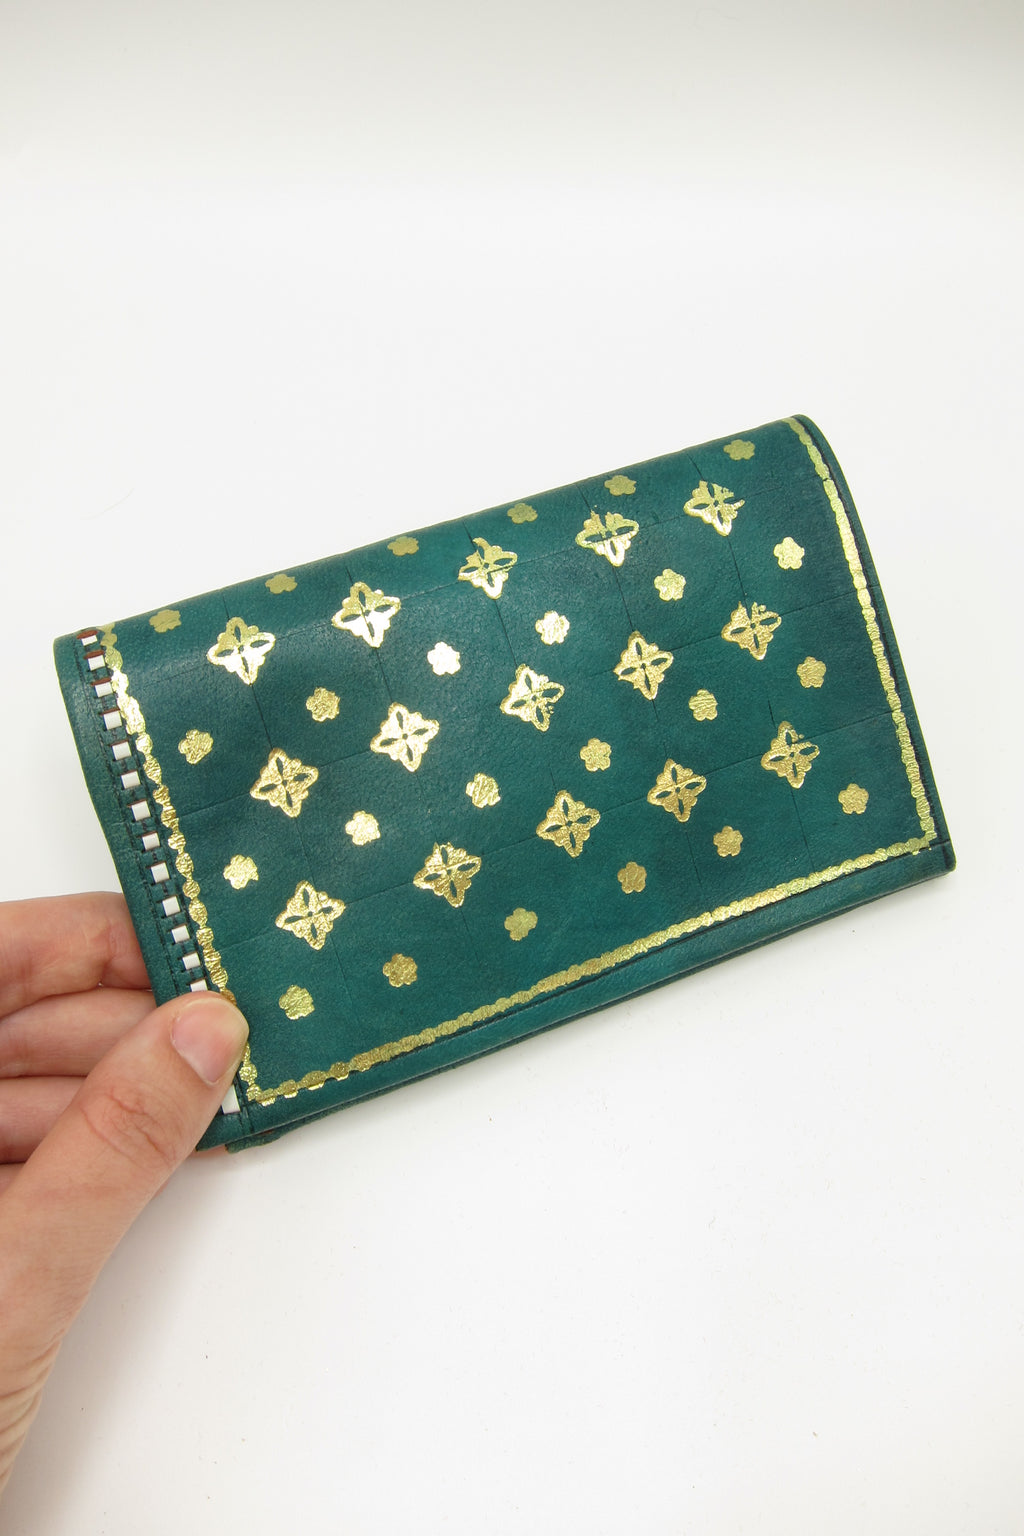 Vintage Florentine 22K Gold Accented Leather Wallet - Green